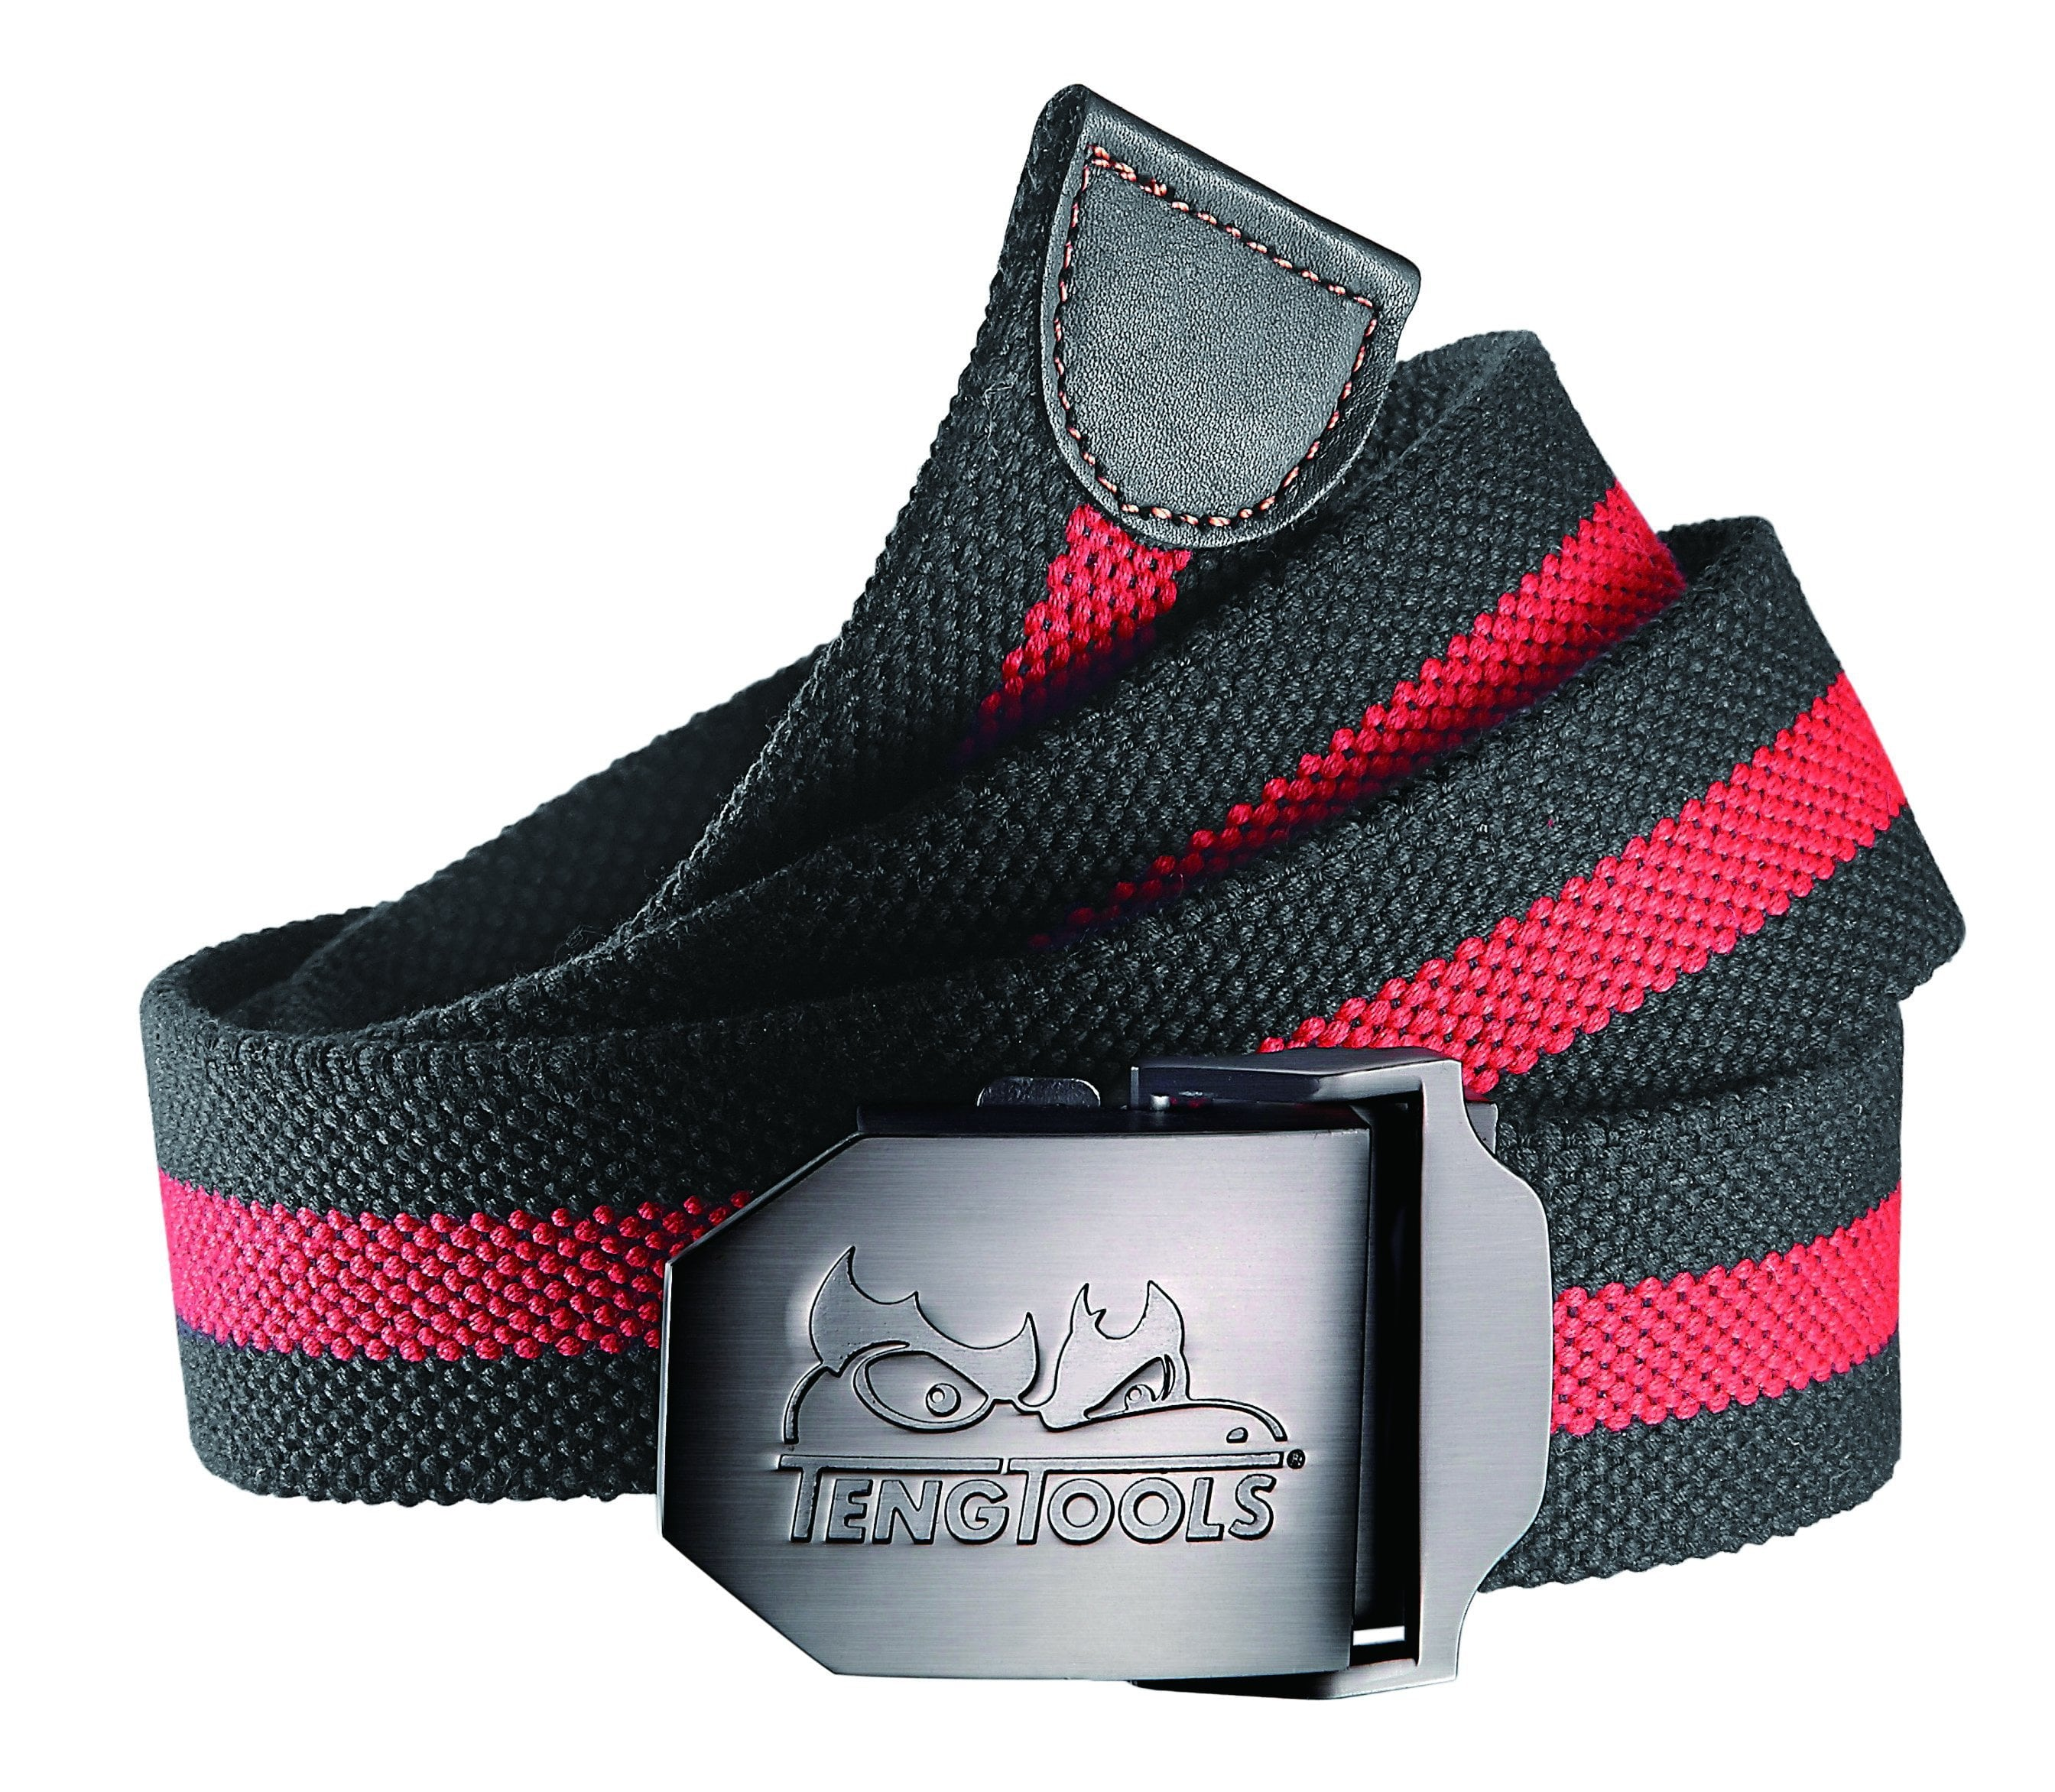 Teng Tools Adjustable Mens Black And Red Casual Classic Textile Belt with Metal Buckle - P-BET01